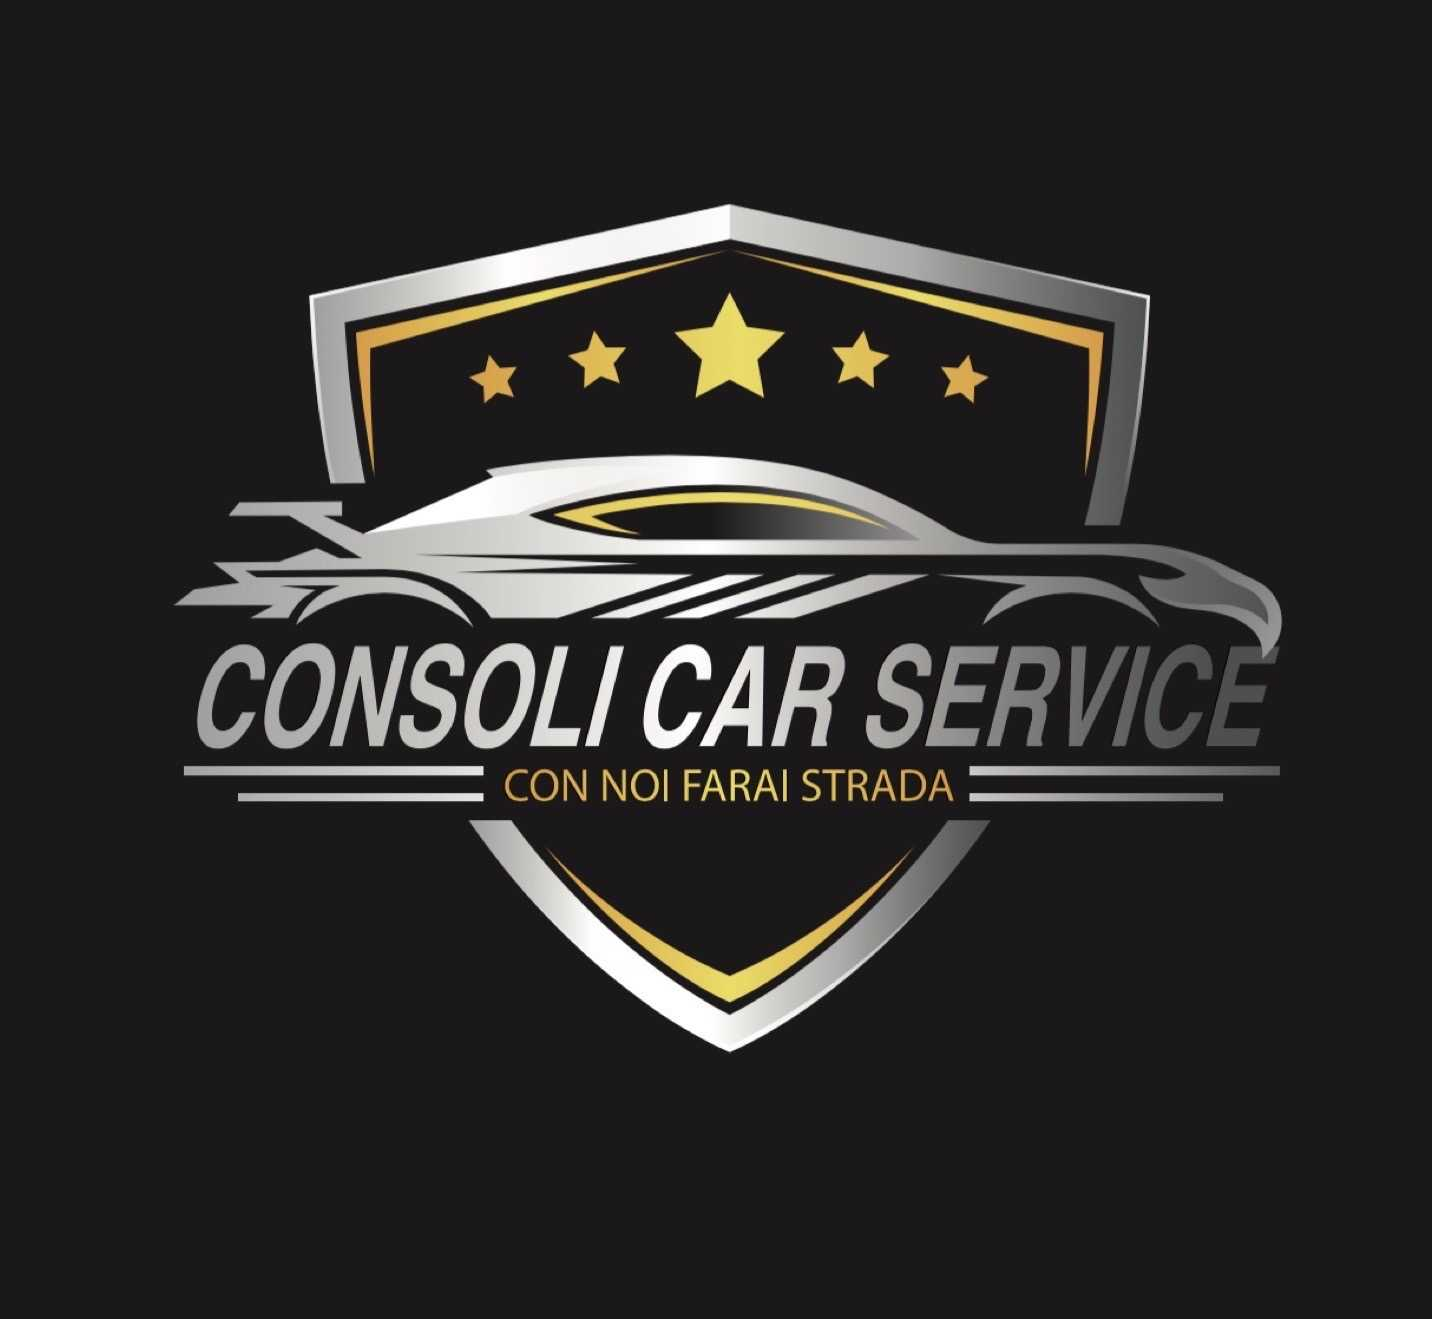 Consoli Car Service - Ingrosso gomme catania - ingrosso gomme misterbianco